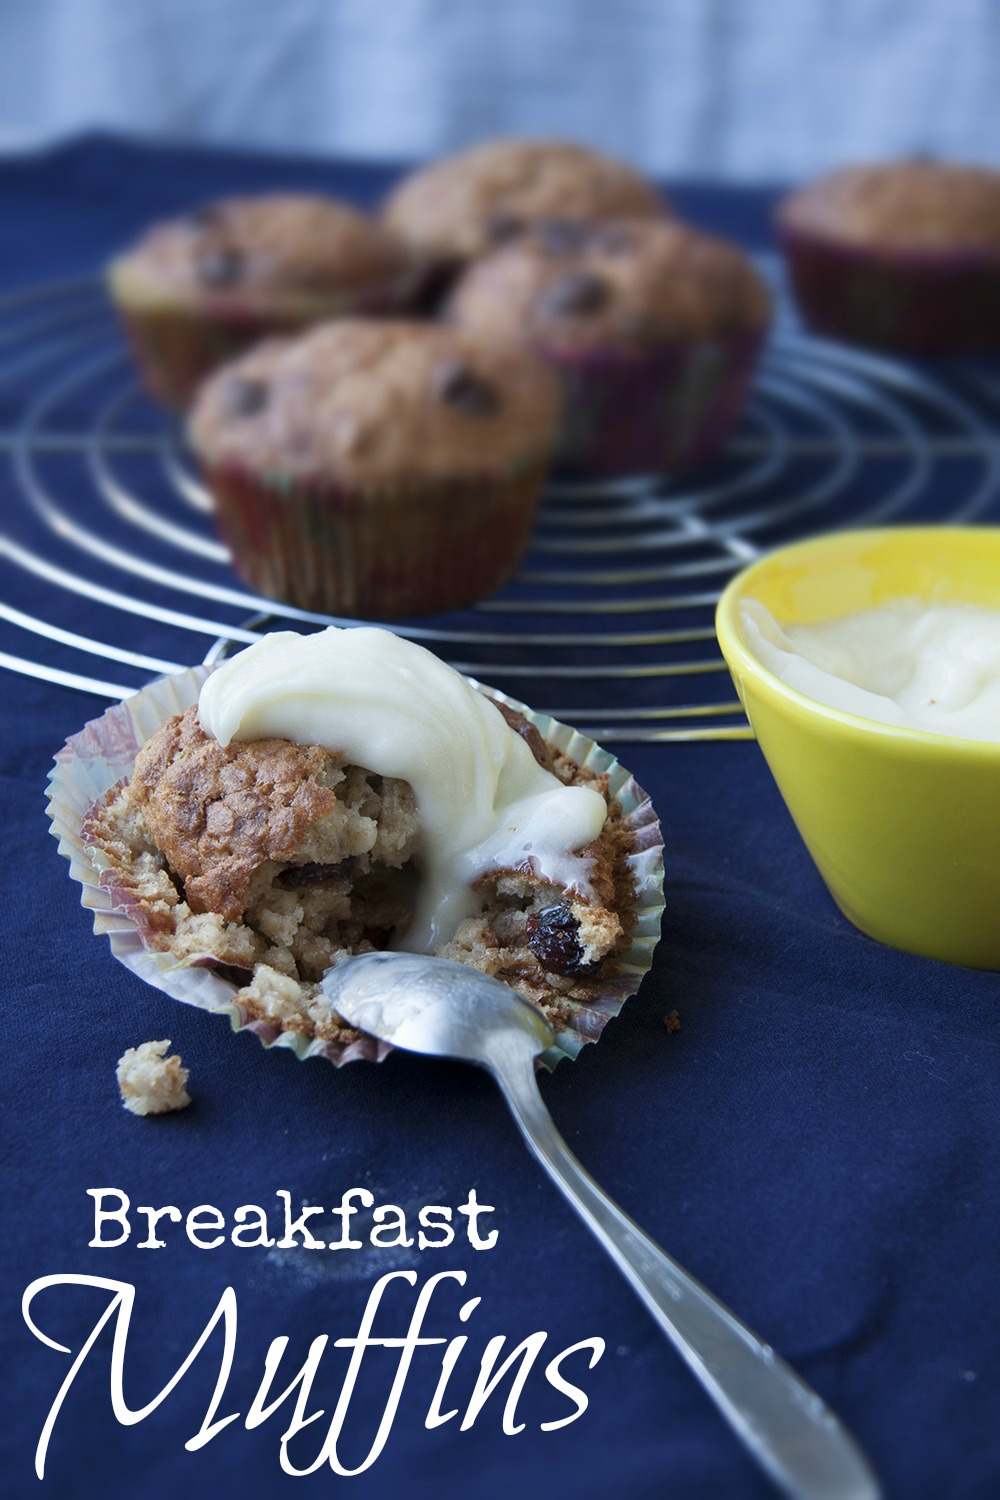 healthy delicious Breakfast Muffins by kleinstyle (recipe from Liebesbotschaft) perfect start of the day for children